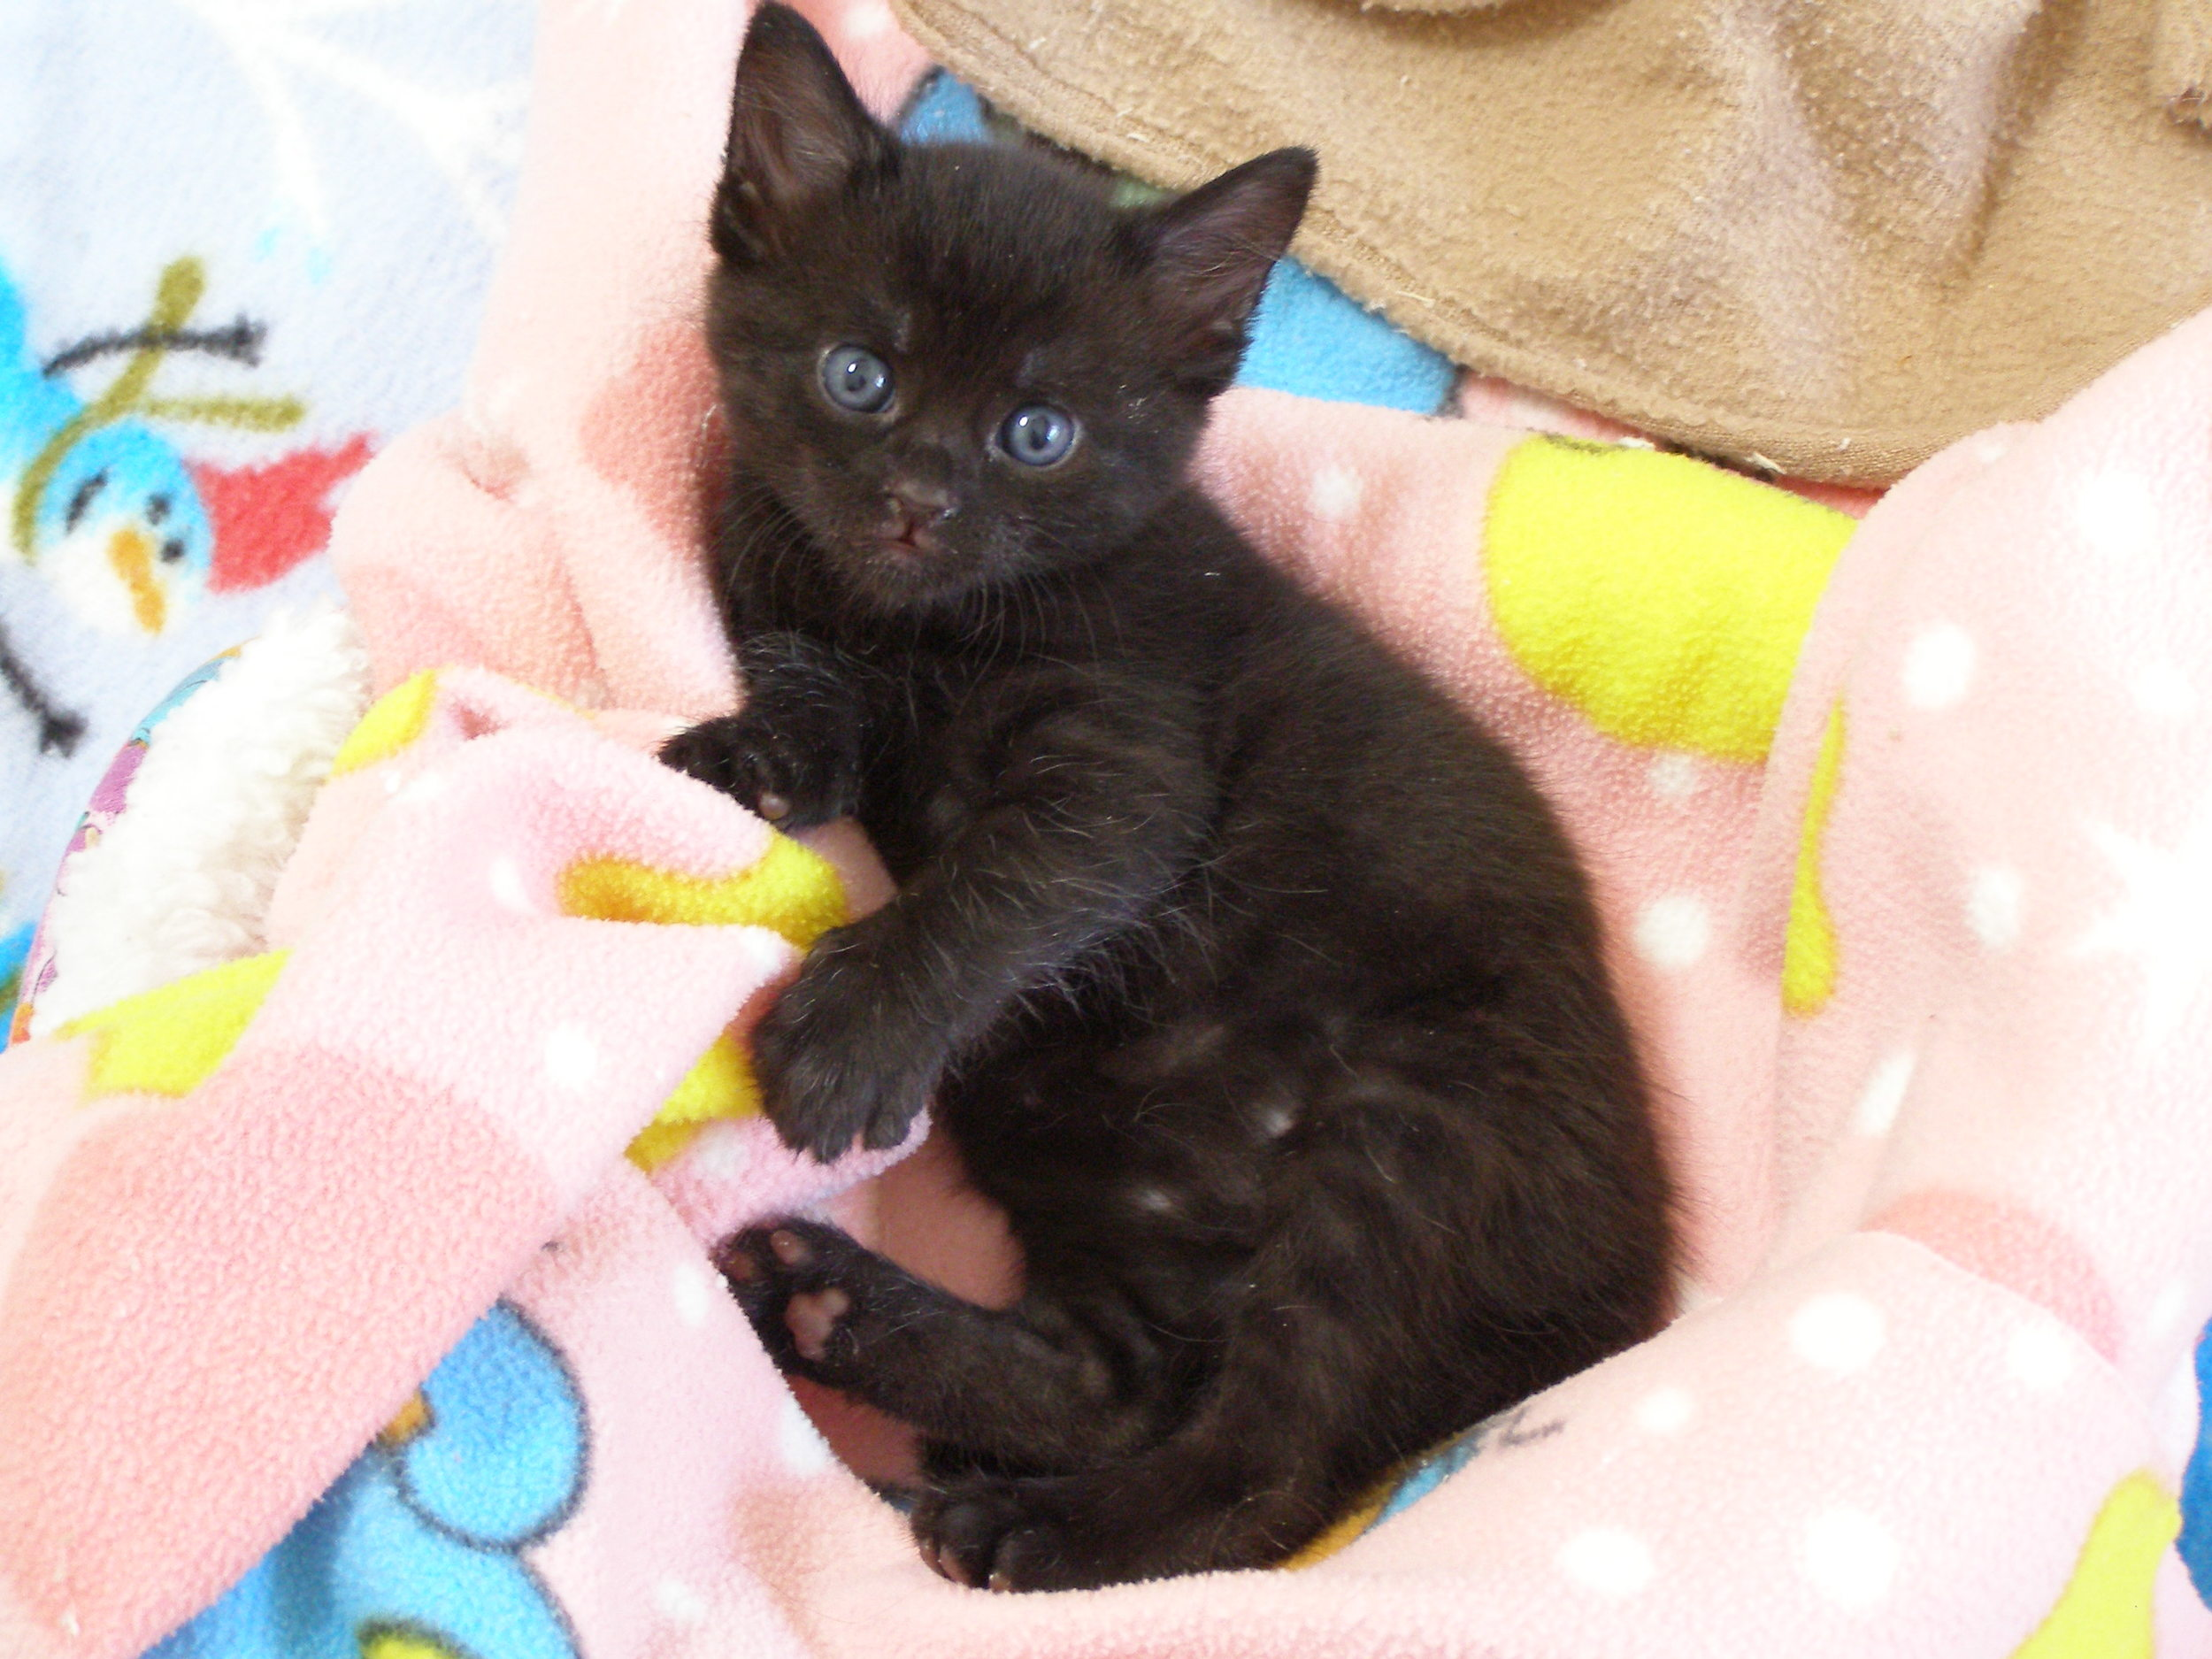 KITTENS :) All adoptable kittens are at least 8 weeks of age, spayed or neutered, micro-chipped and have received their basic vaccinations. Our selection of kittens changes daily, please stop in or call to she what we have available for adoption. Who can resist the cuteness?!